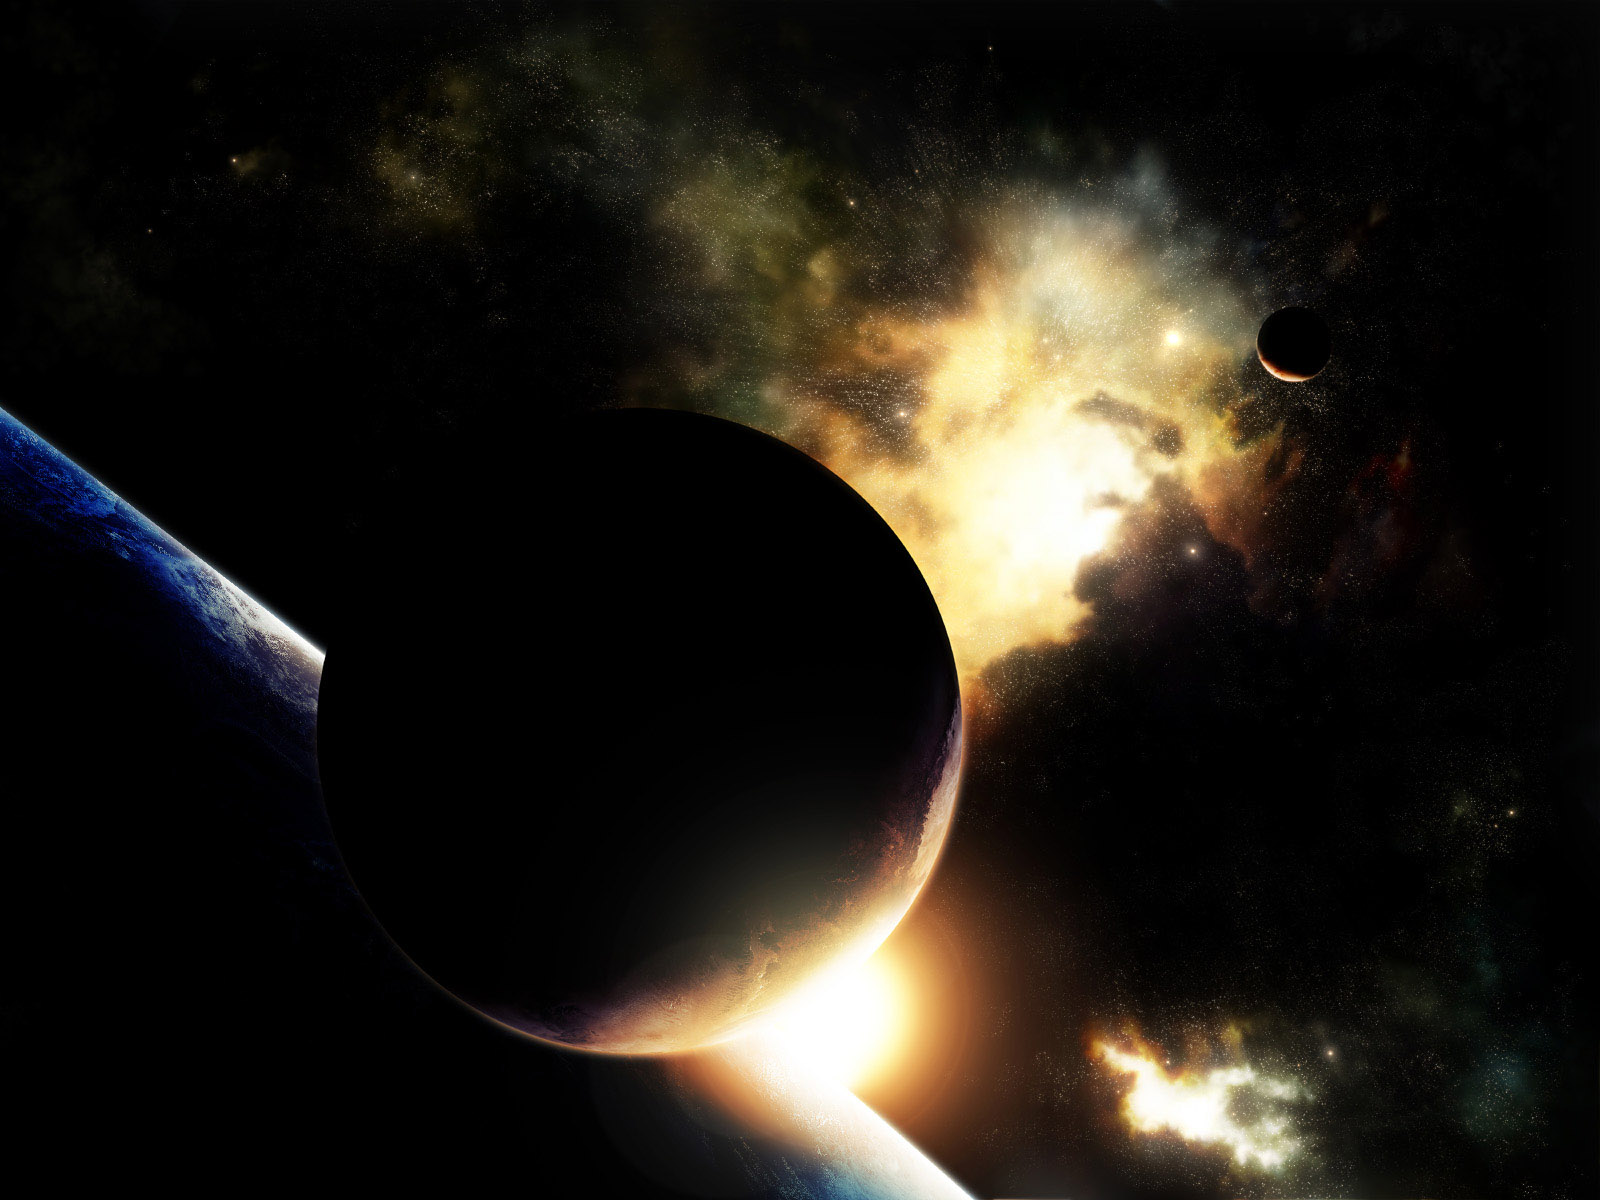 Best Space Wallpaper Ever Top Wallpapers HD Top Space Wallpapers HD